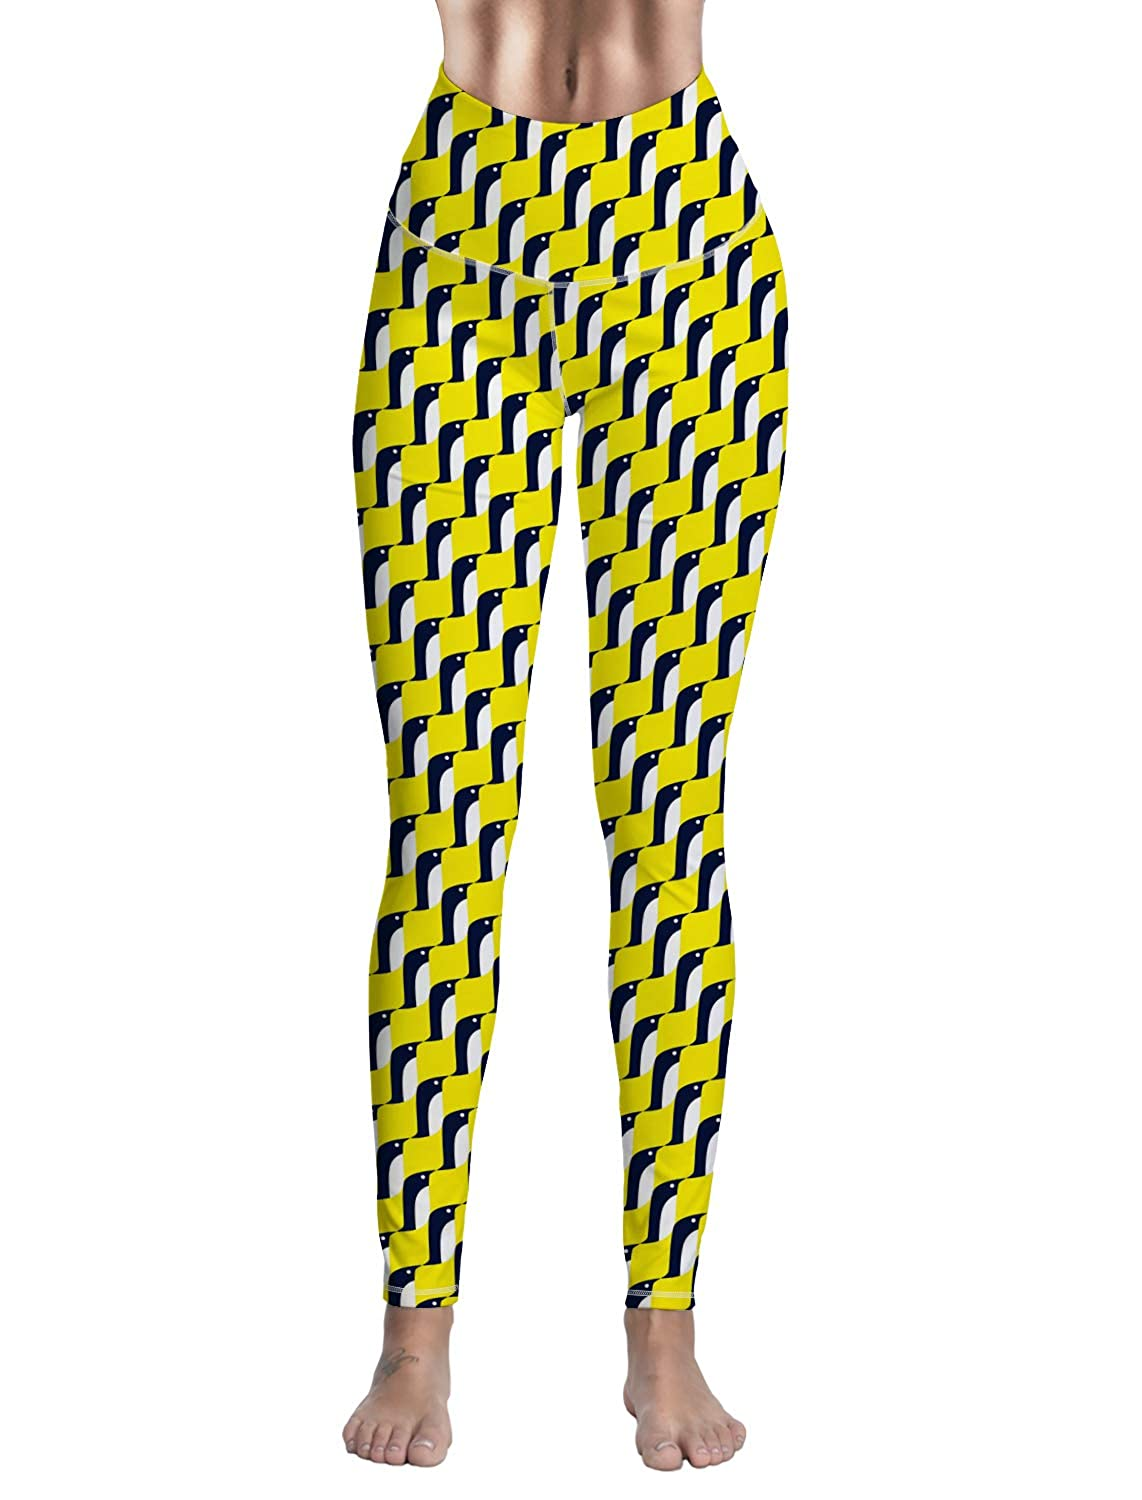 Fandim Fly PANTS レディース Large Geometry2 B07HP4W3F4